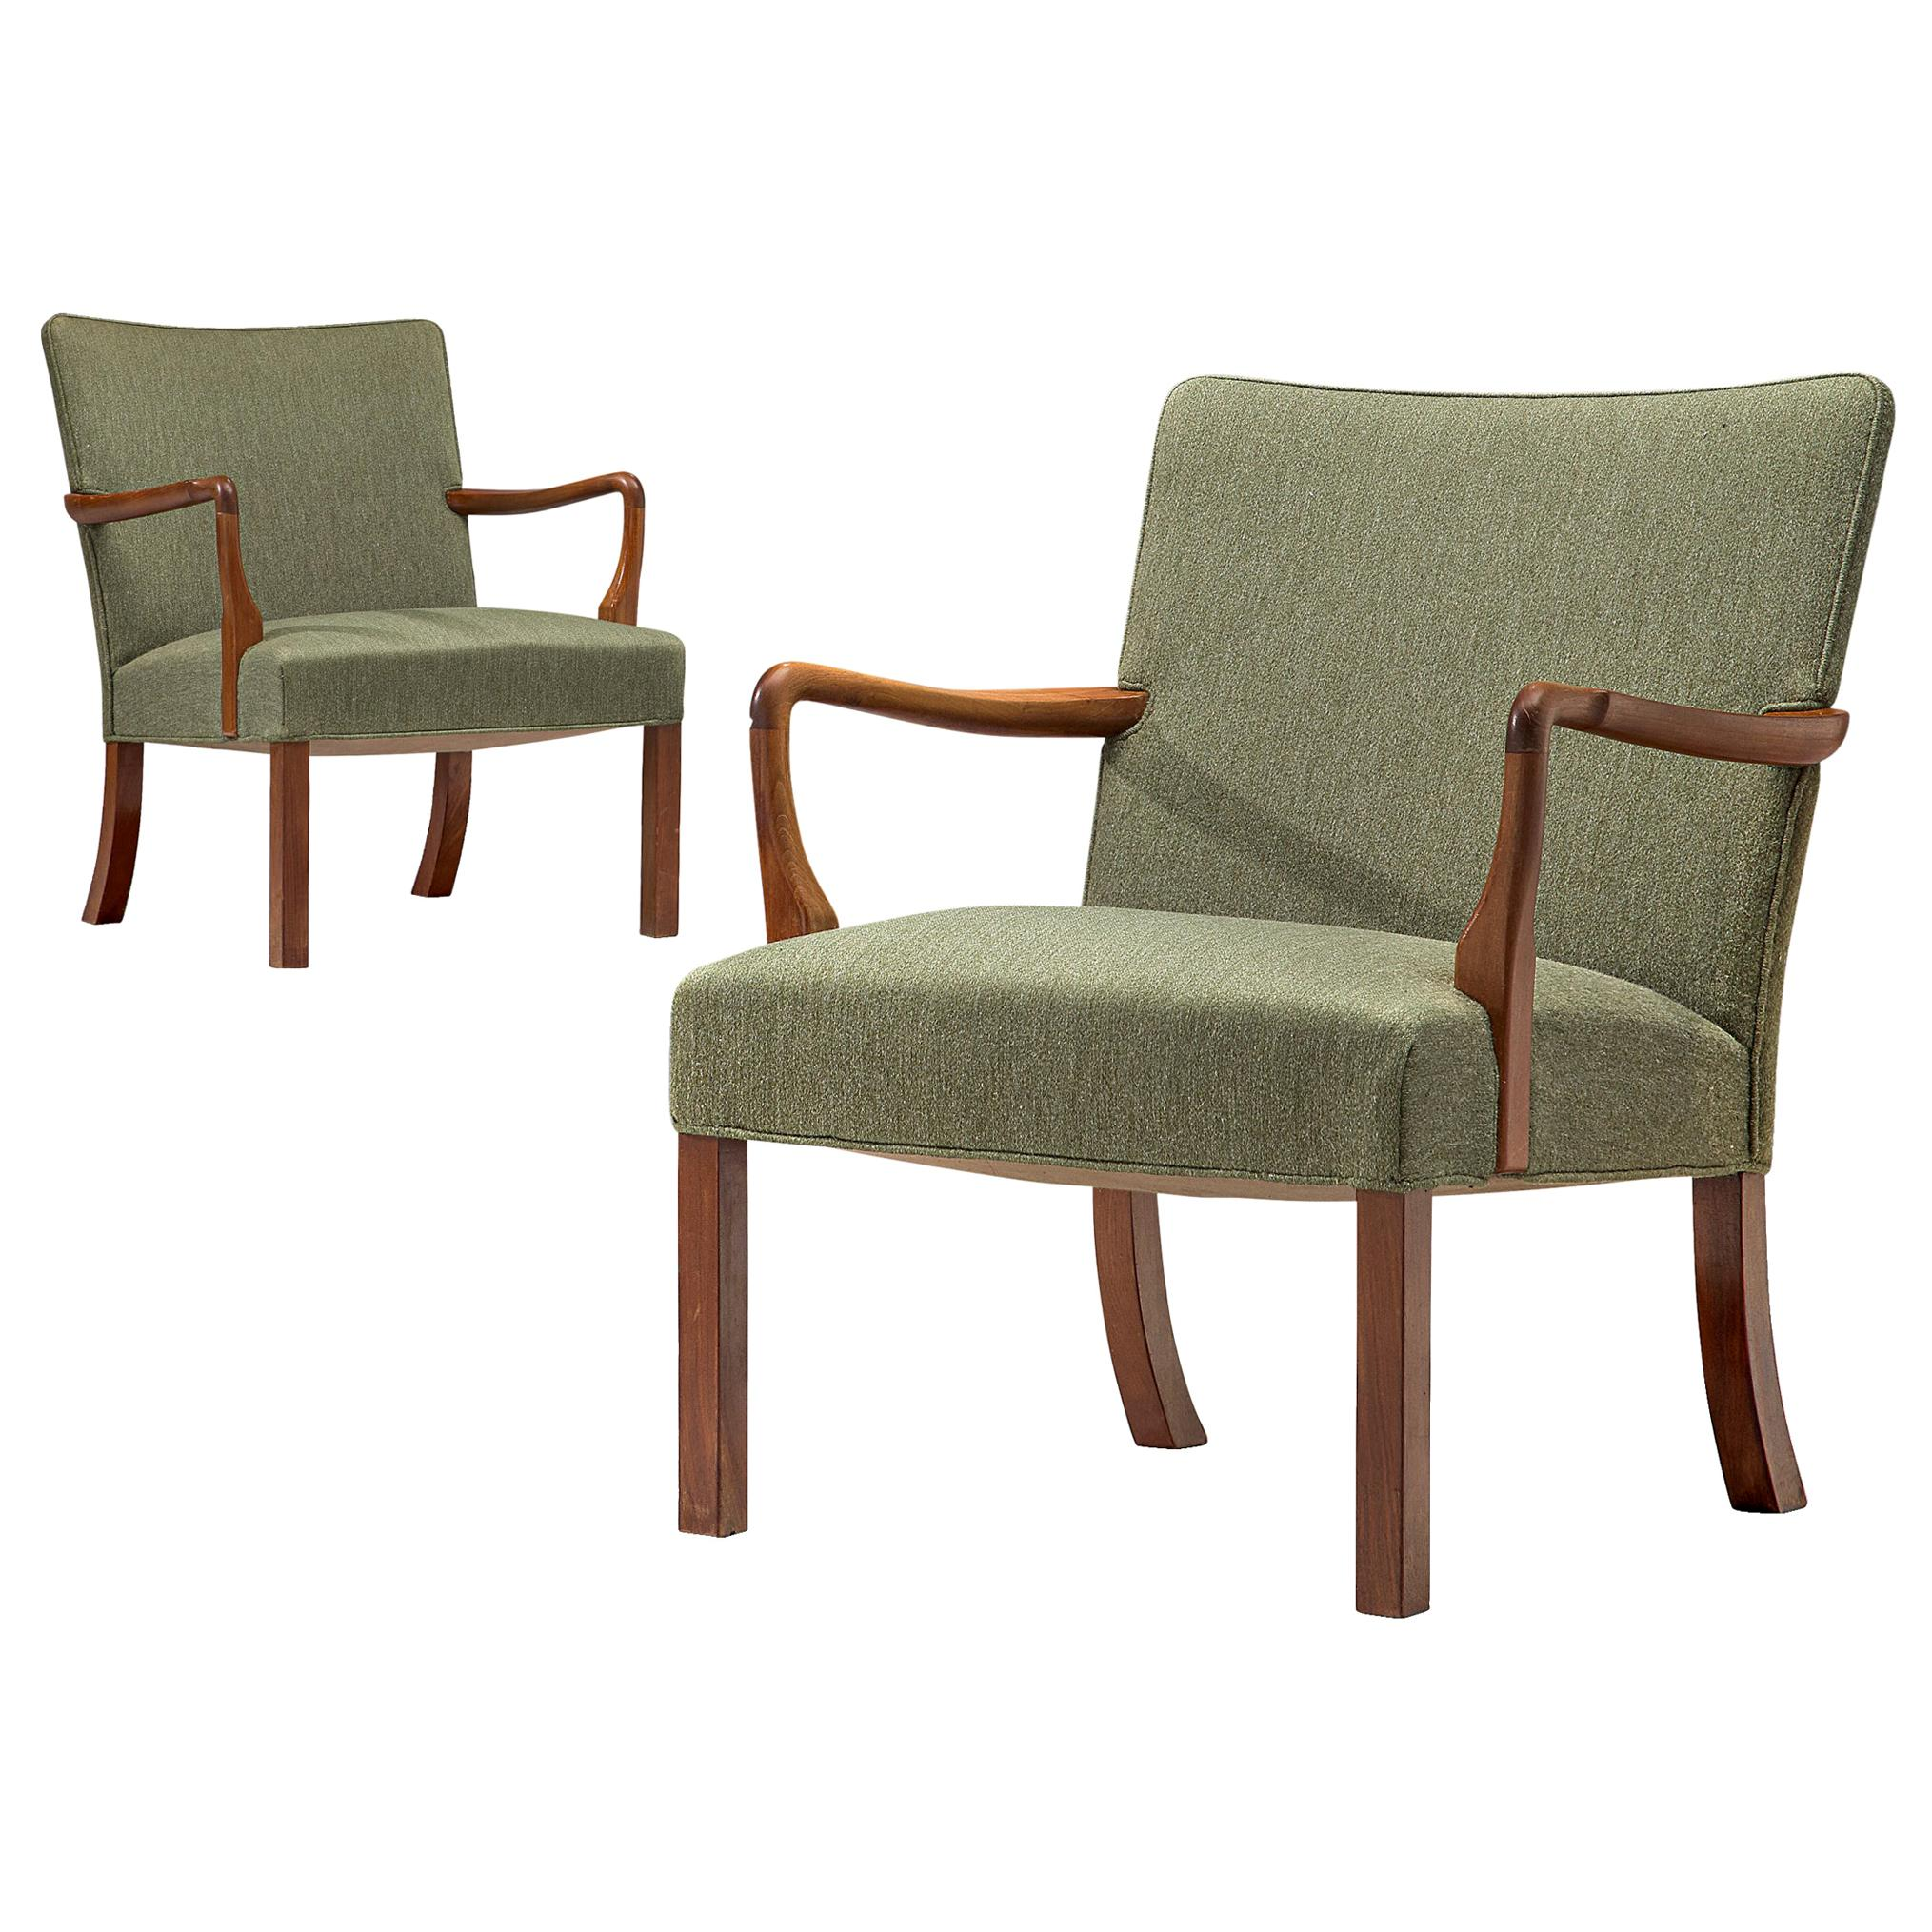 Pair of Easy Chairs in Mahogany by Jacob Kjær